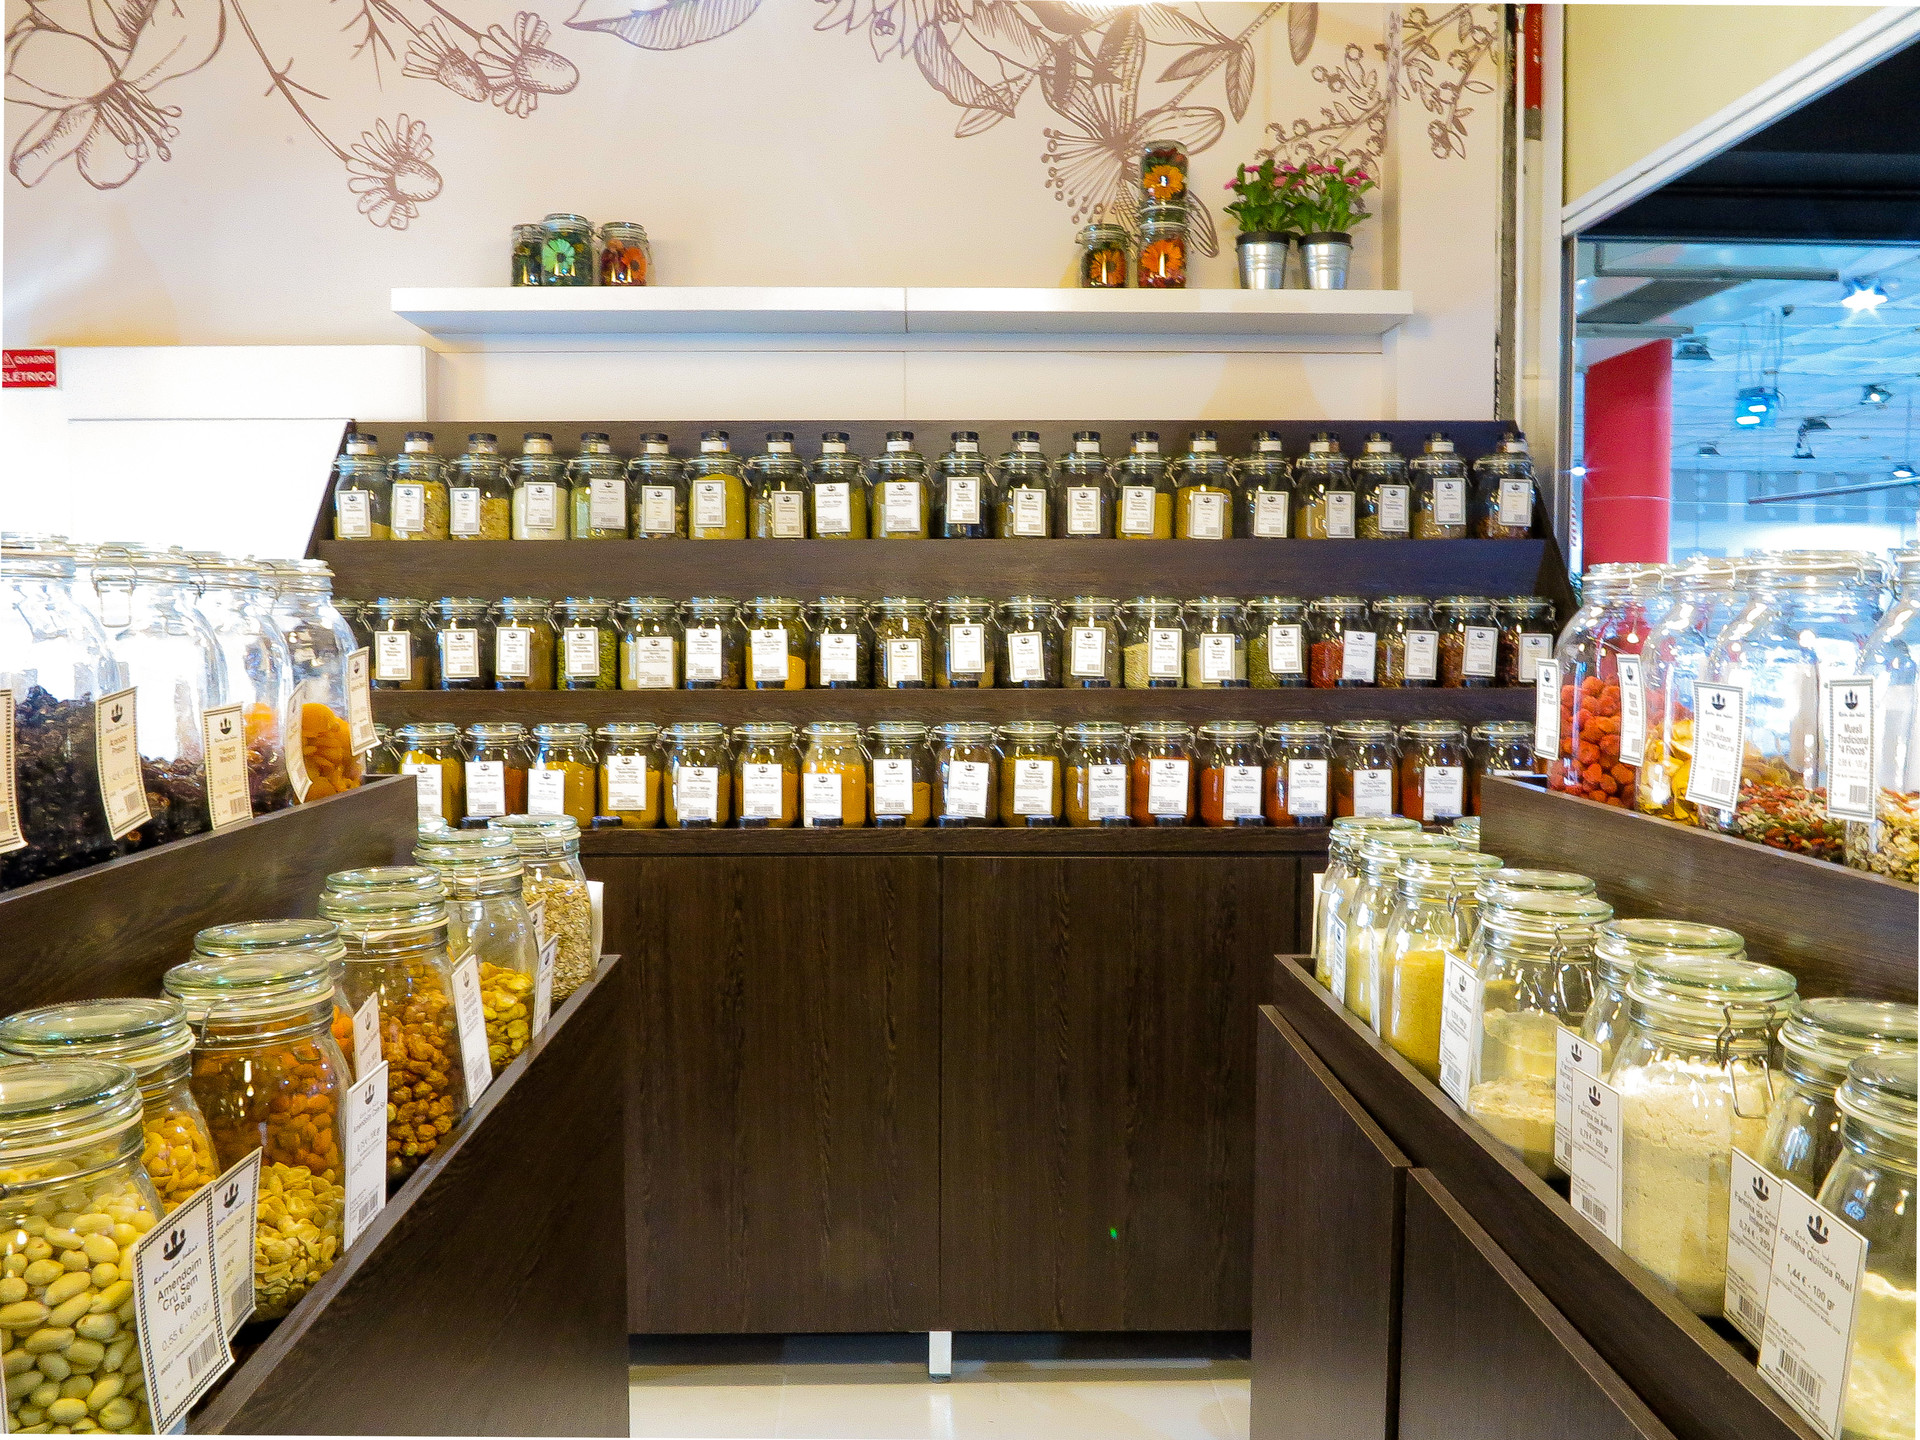 a-place-spice-up-your-food-get-some-tea-